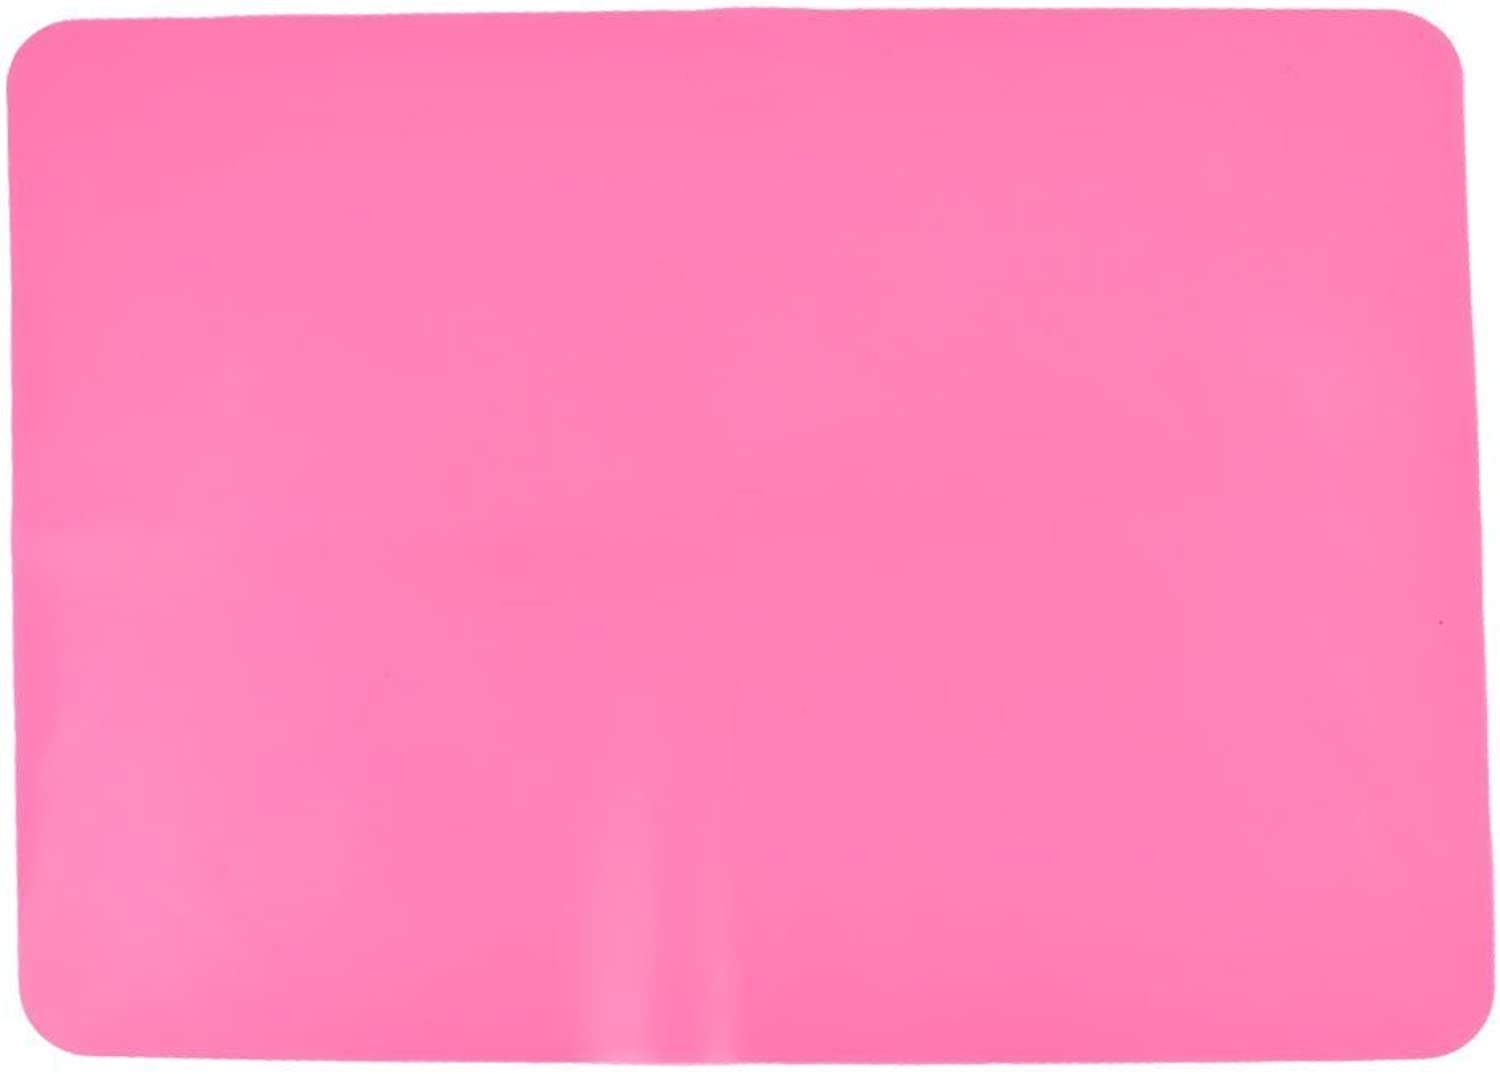 1Pc Pink   Silicone Kitchen Tablewear Placemat Tablet Pad Mat Coaster 40x30cm Pink